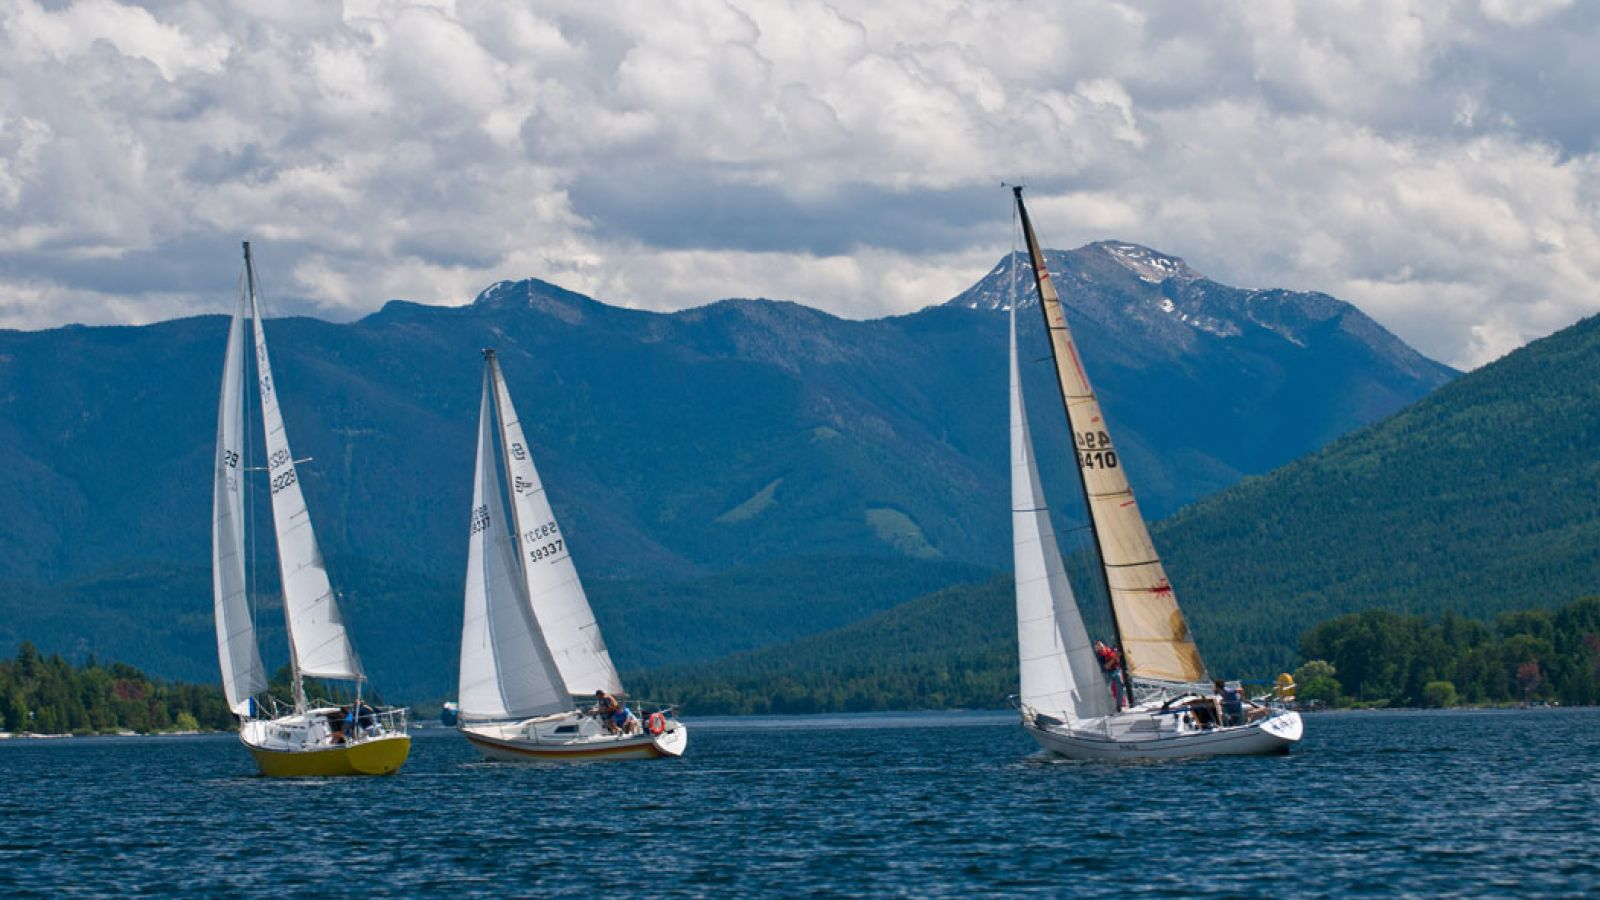 Sailing on Kootenay Lake.